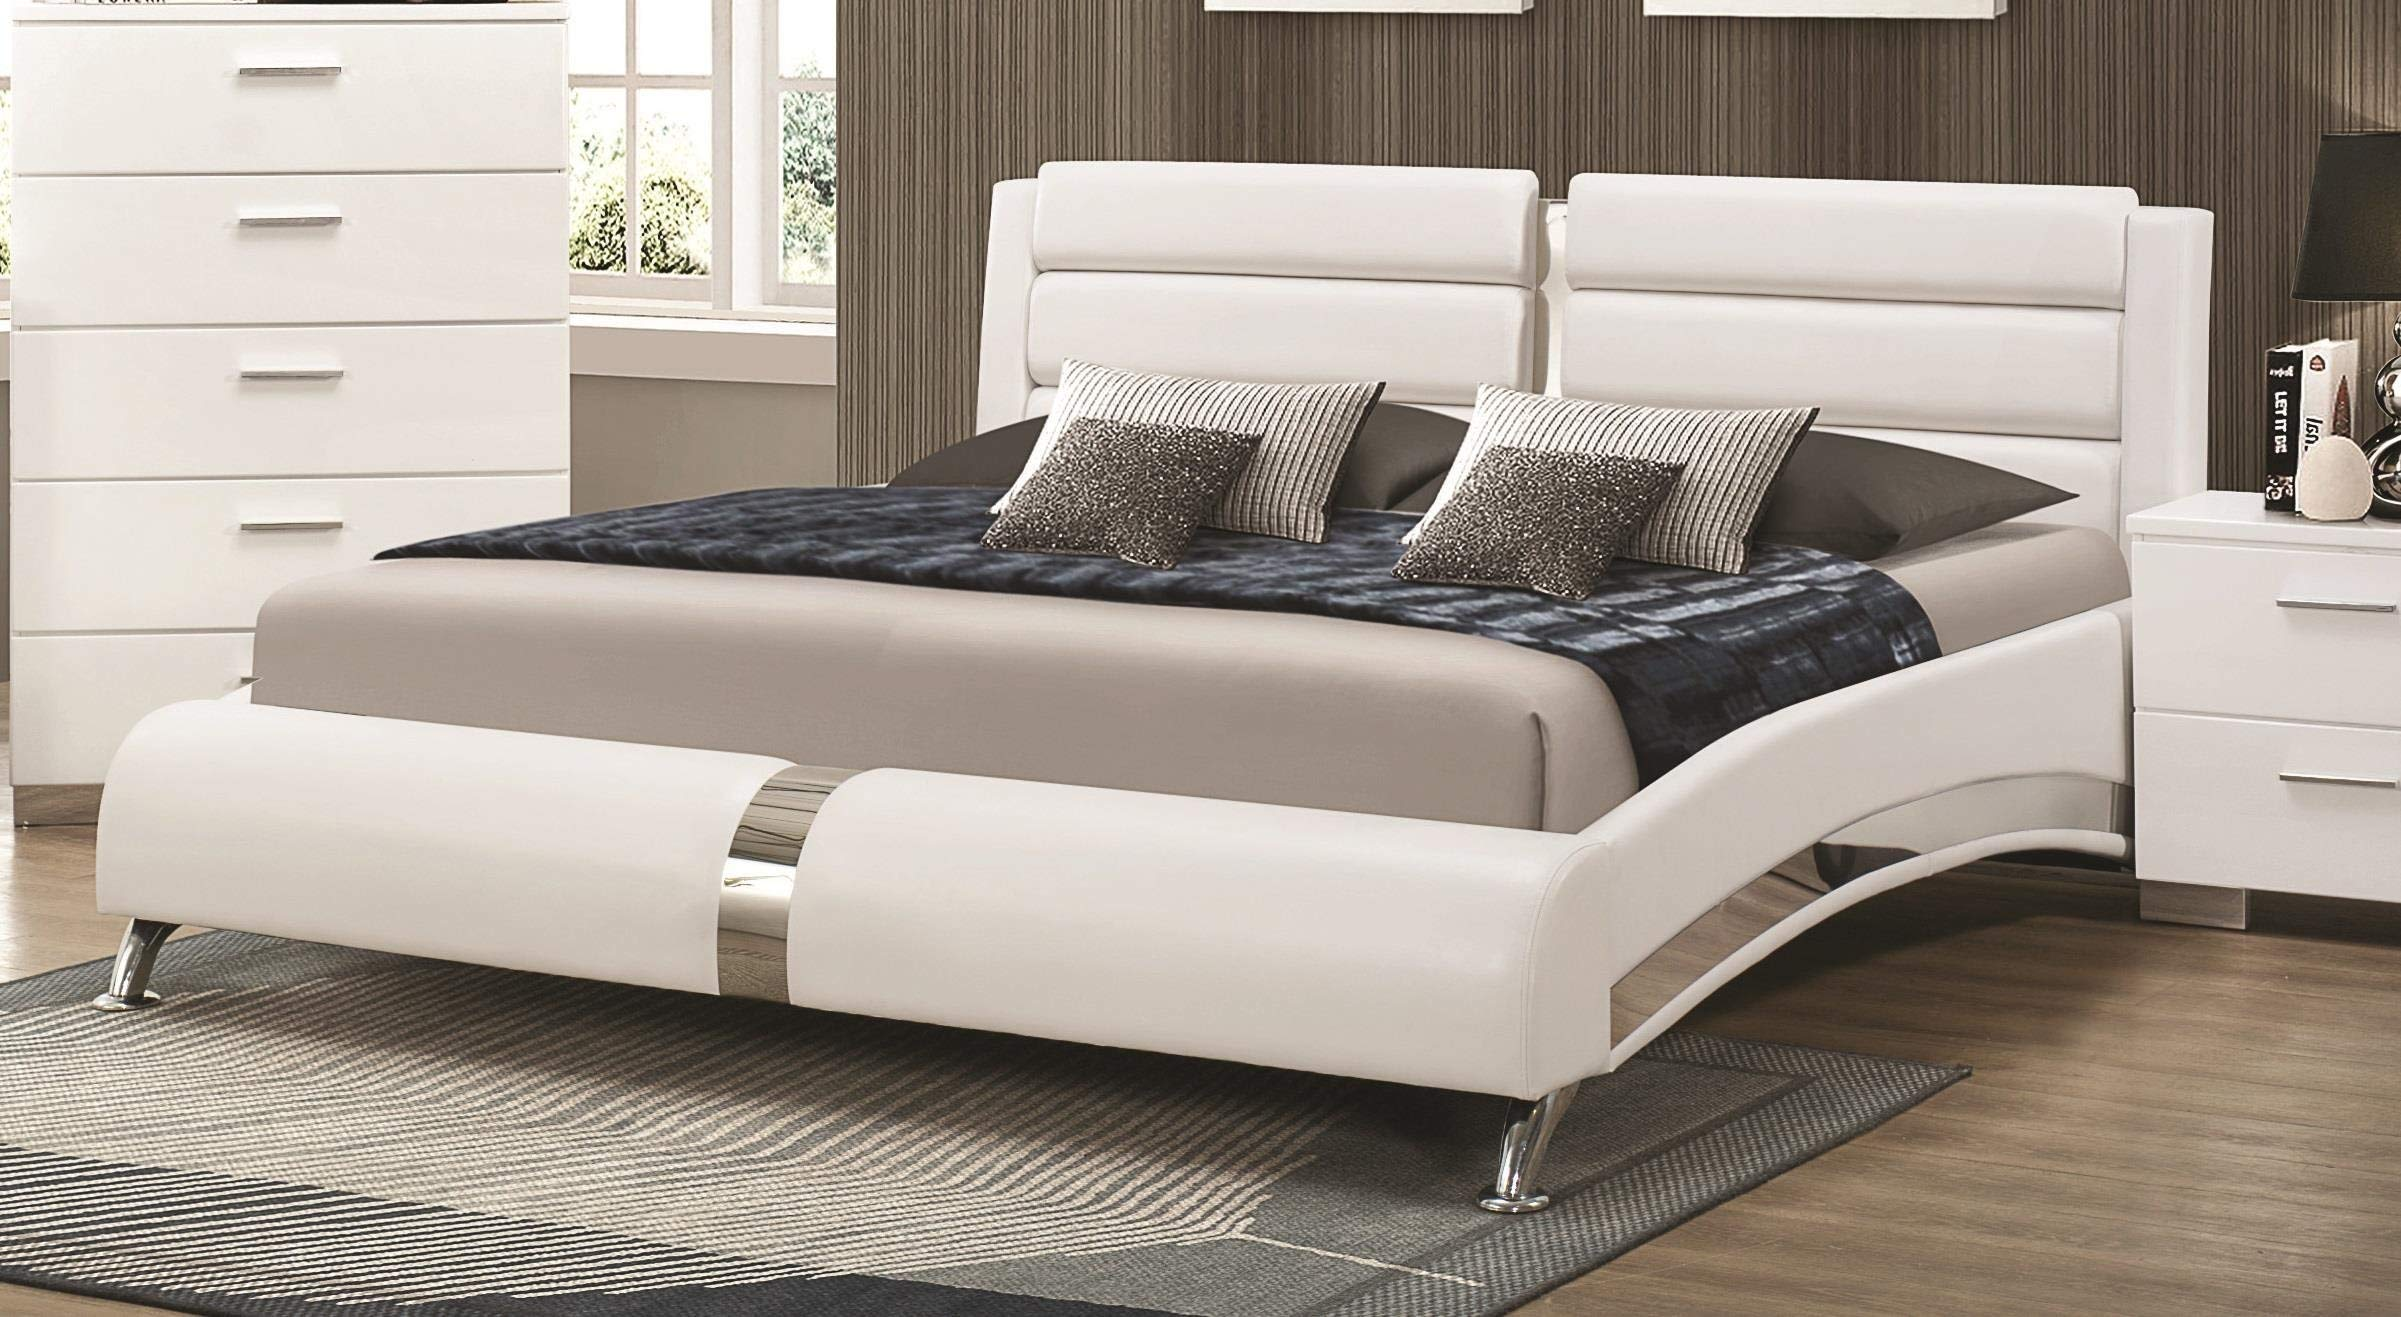 Coaster Eastern King Bed, Glossy White by Coaster Home Furnishings